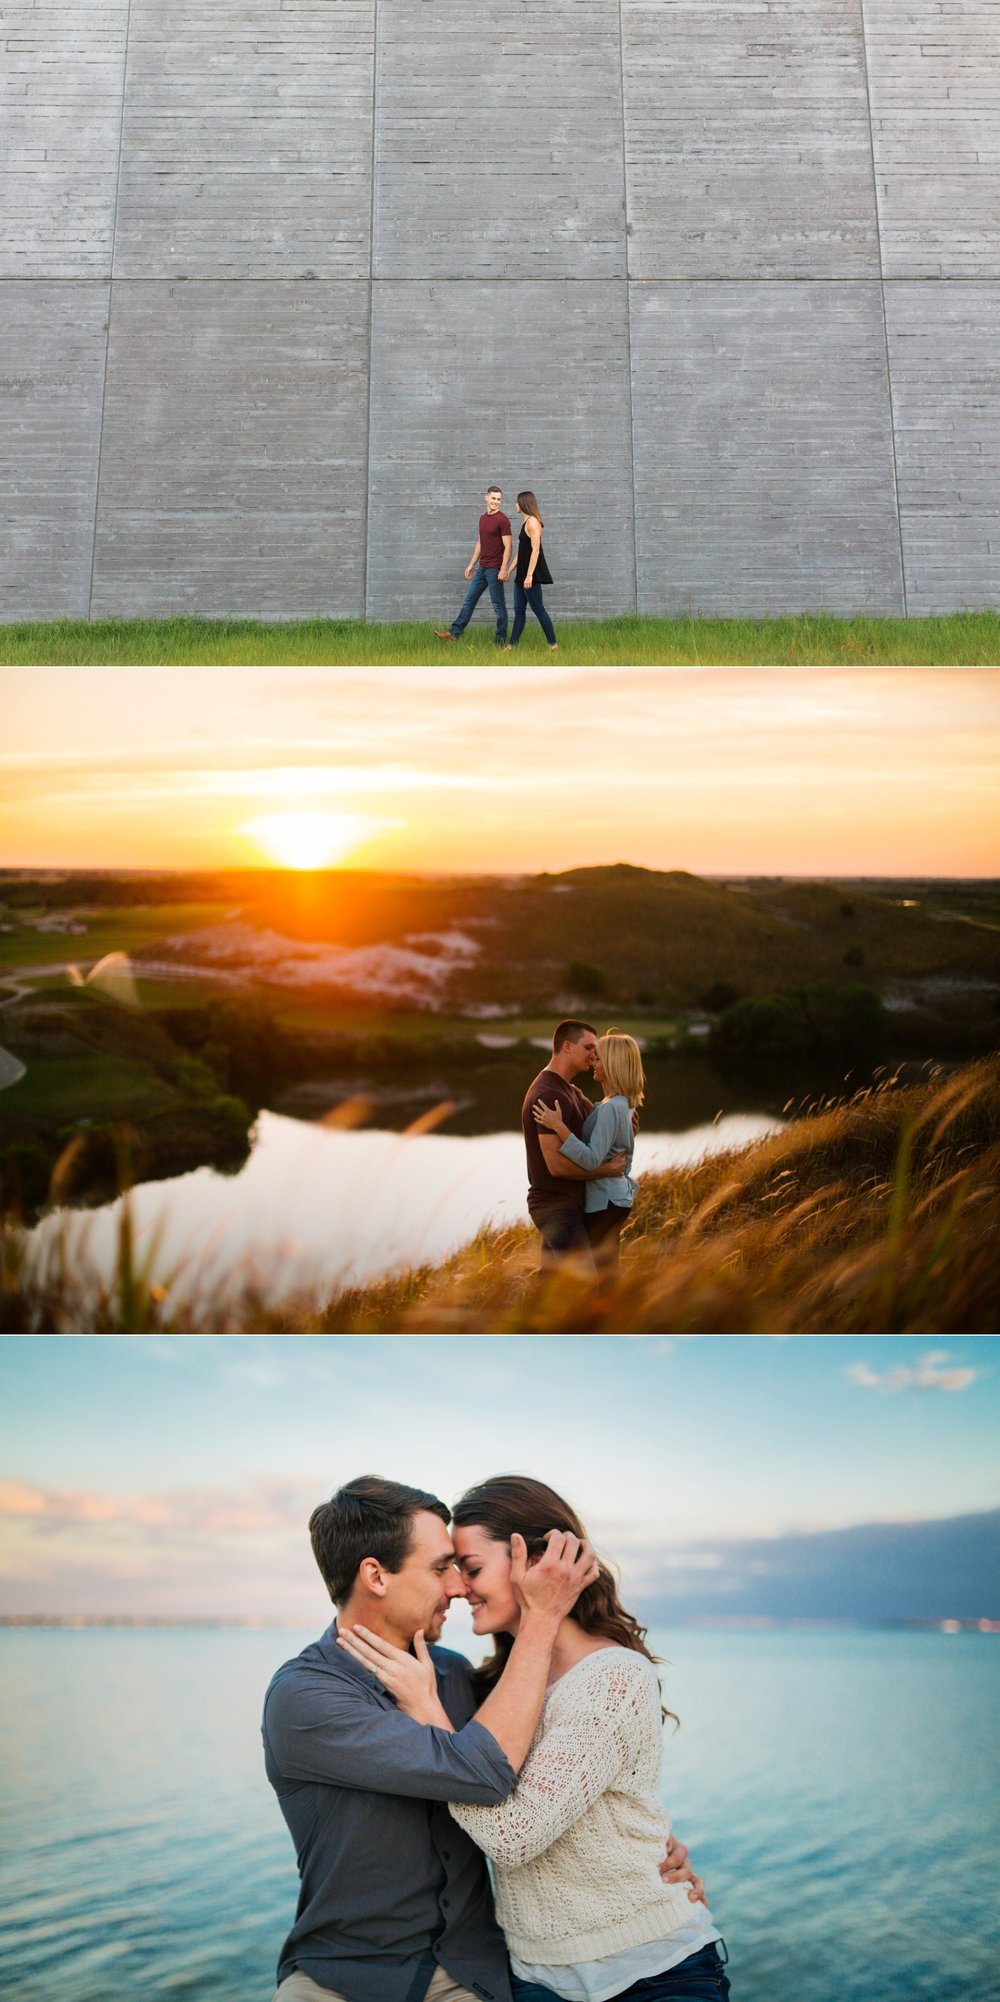 Jake & Katie Photography Best of Couples 2016-041.jpg